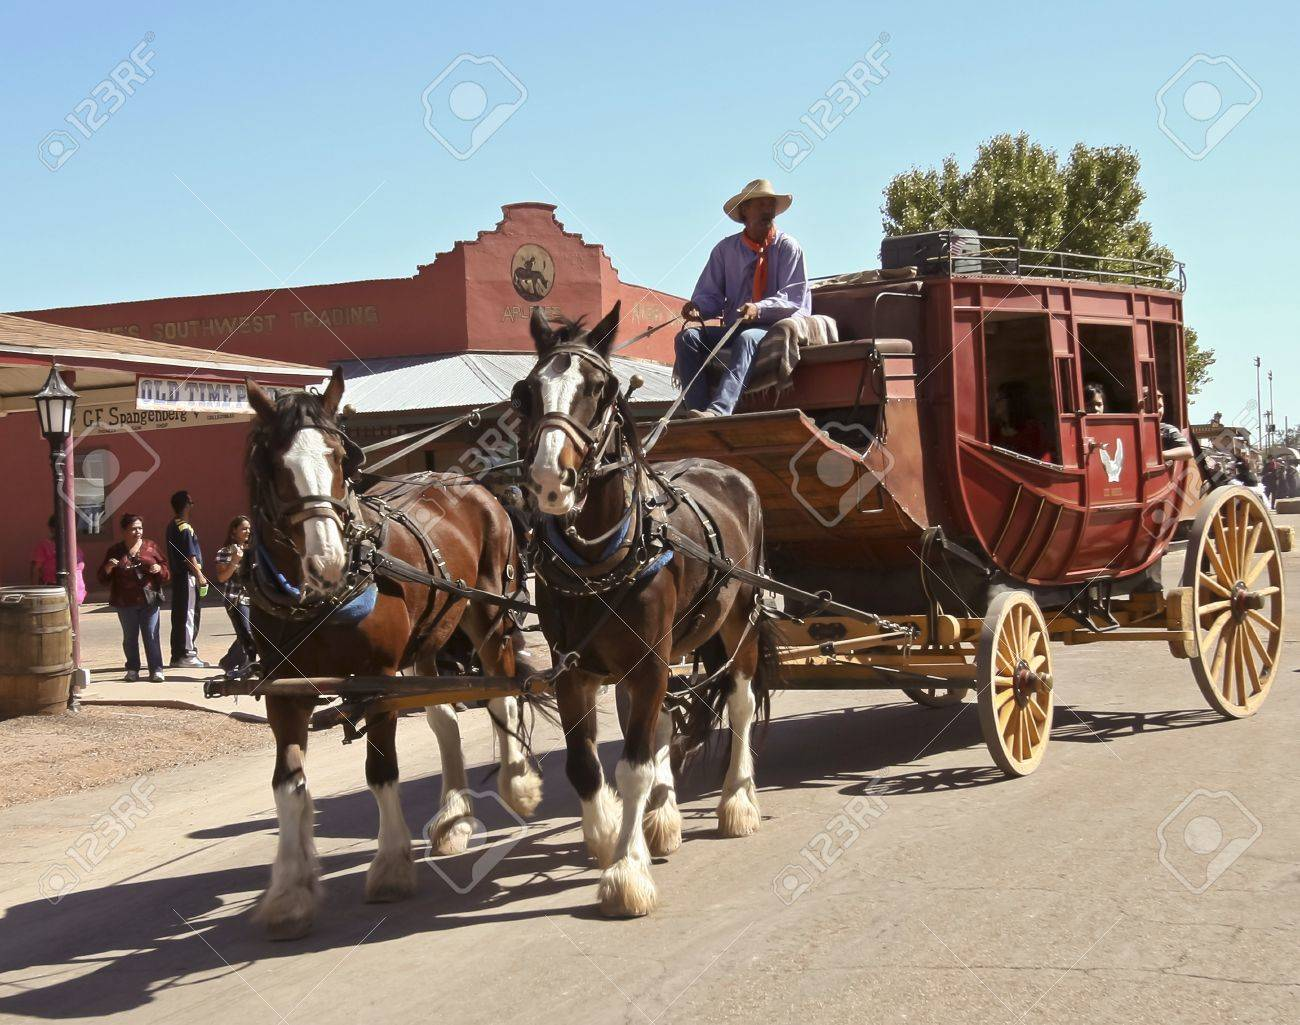 Tombstone, Arizona - October 22: Allen Street on October 22, 2011, in Tombstone, Arizona. A Helldorado stagecoach welcomes tourists to historic Allen Street where gunfights and barroom brawls are staged during this annual celebration of the Old West. Stock Photo - 10977210